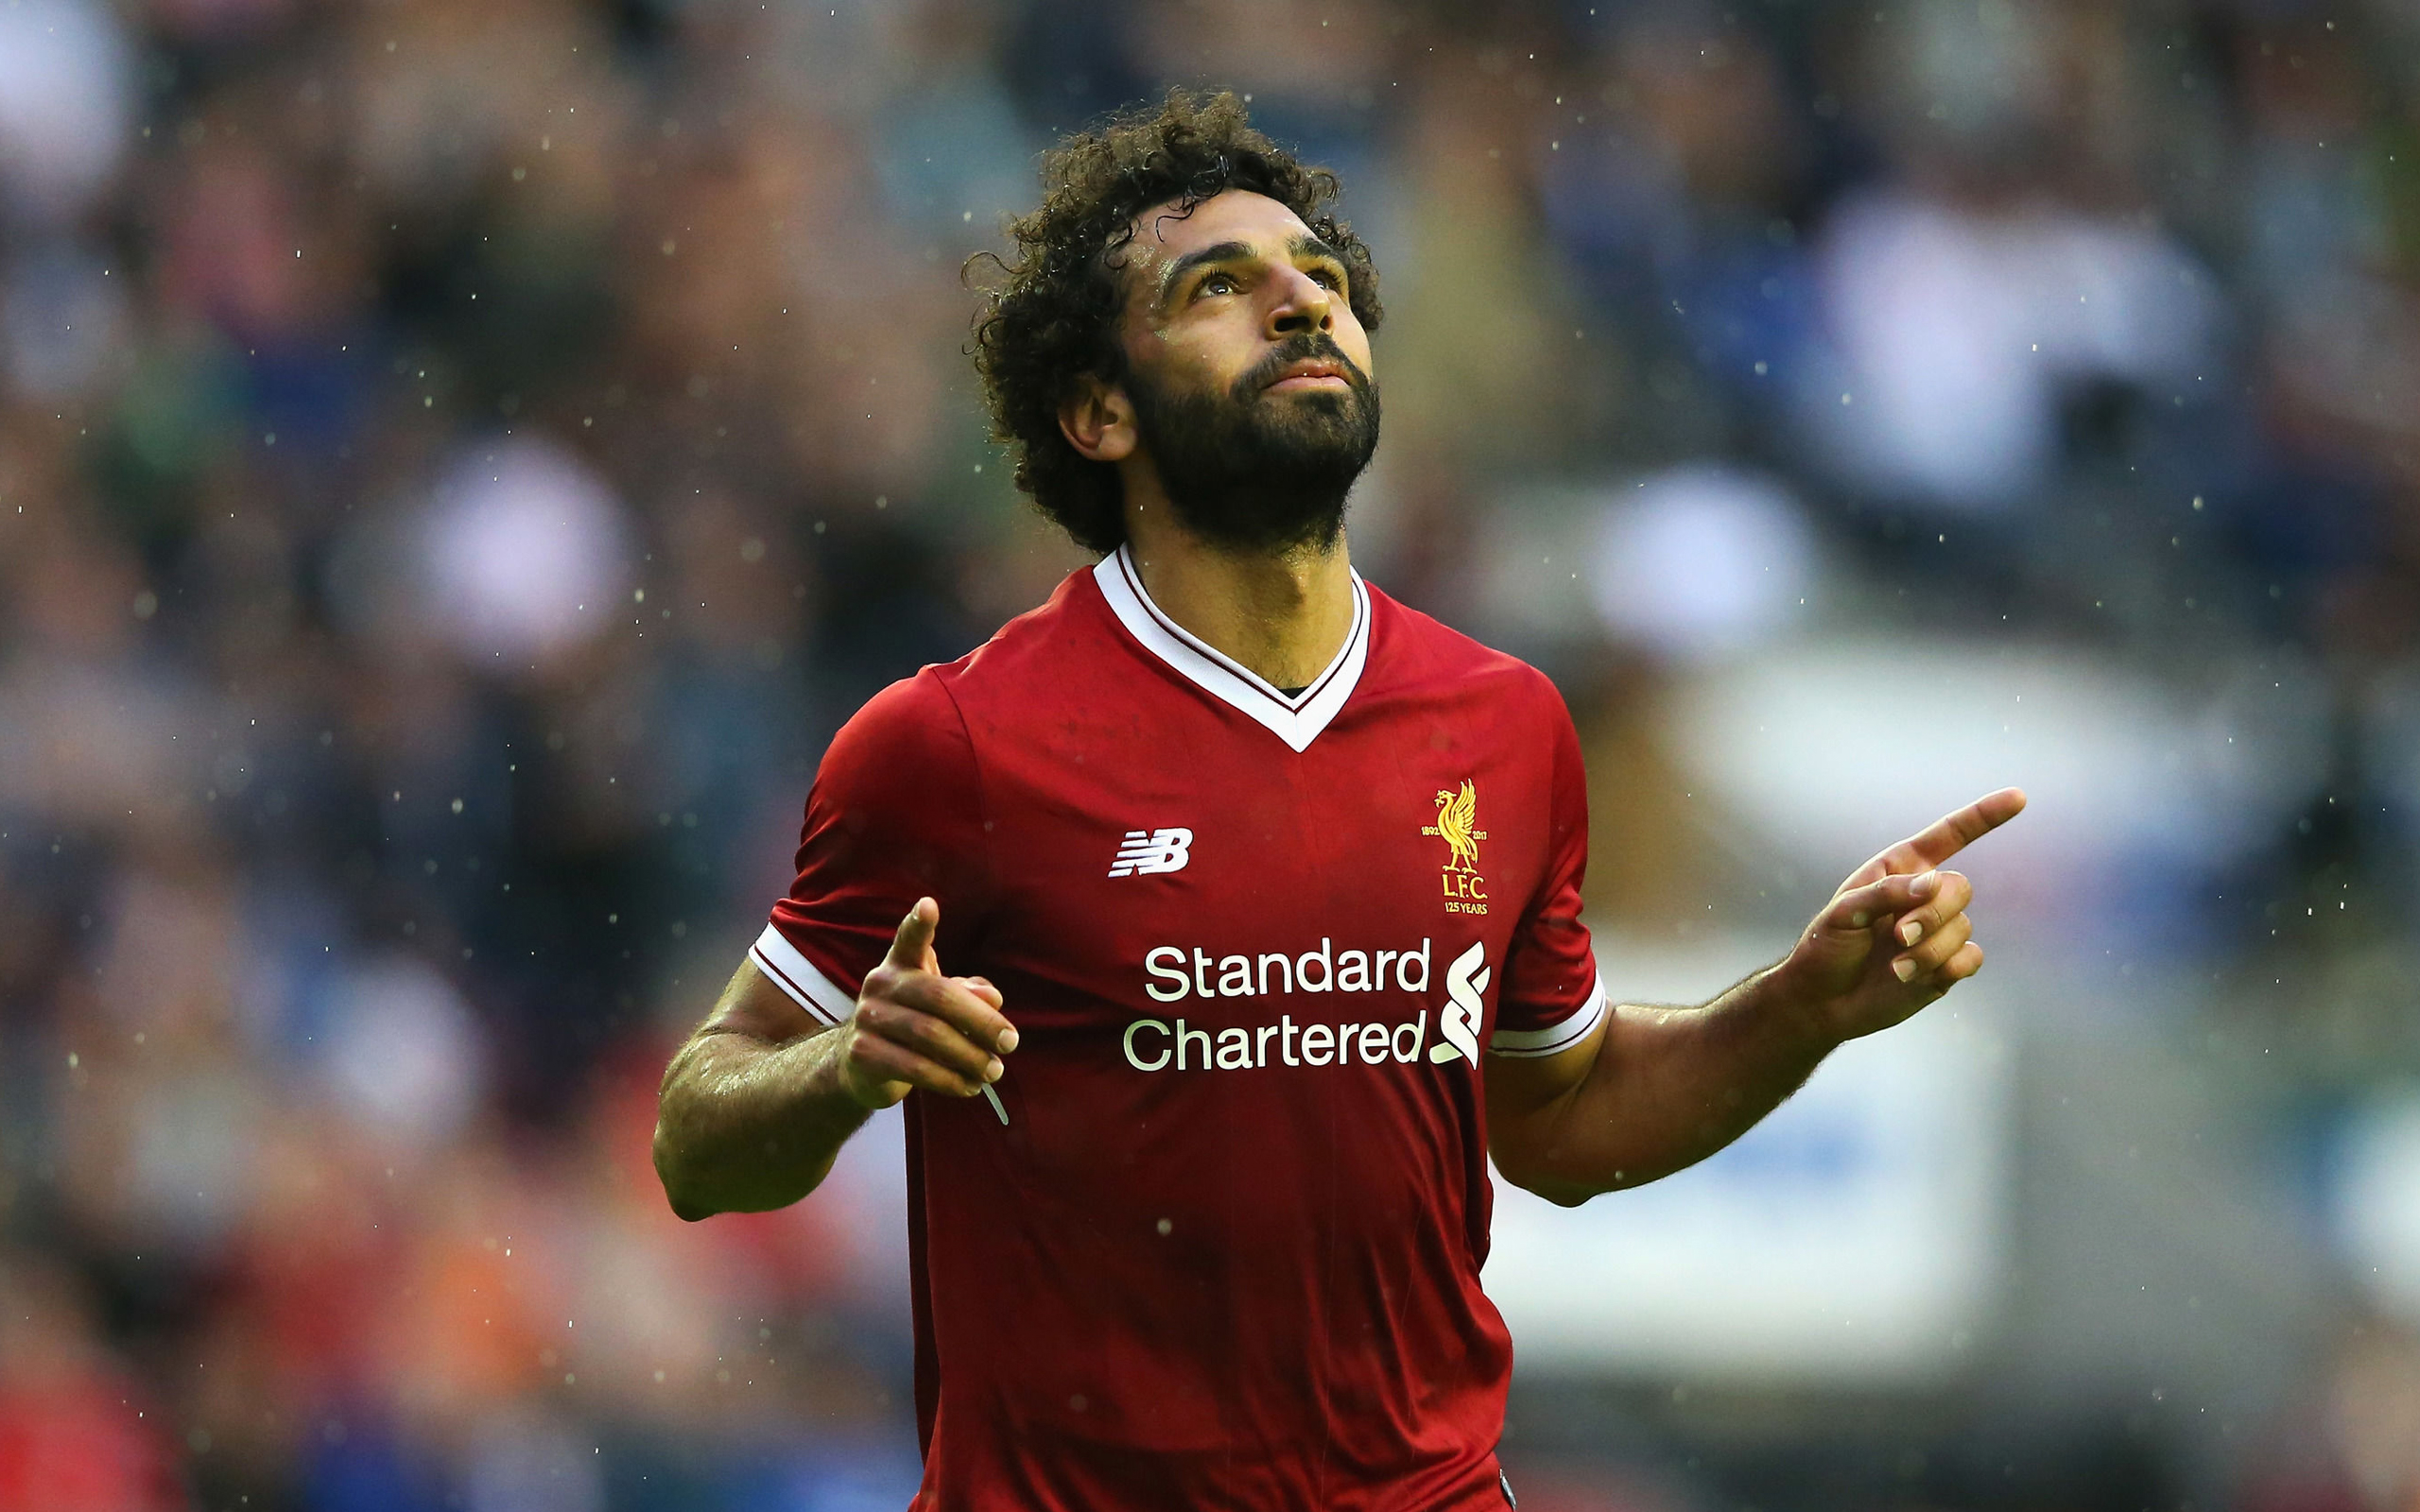 Mohamed Salah Liverpool And Egyptian Football Player Wallpaper Hd Sports 4k Wallpapers Images Photos And Background